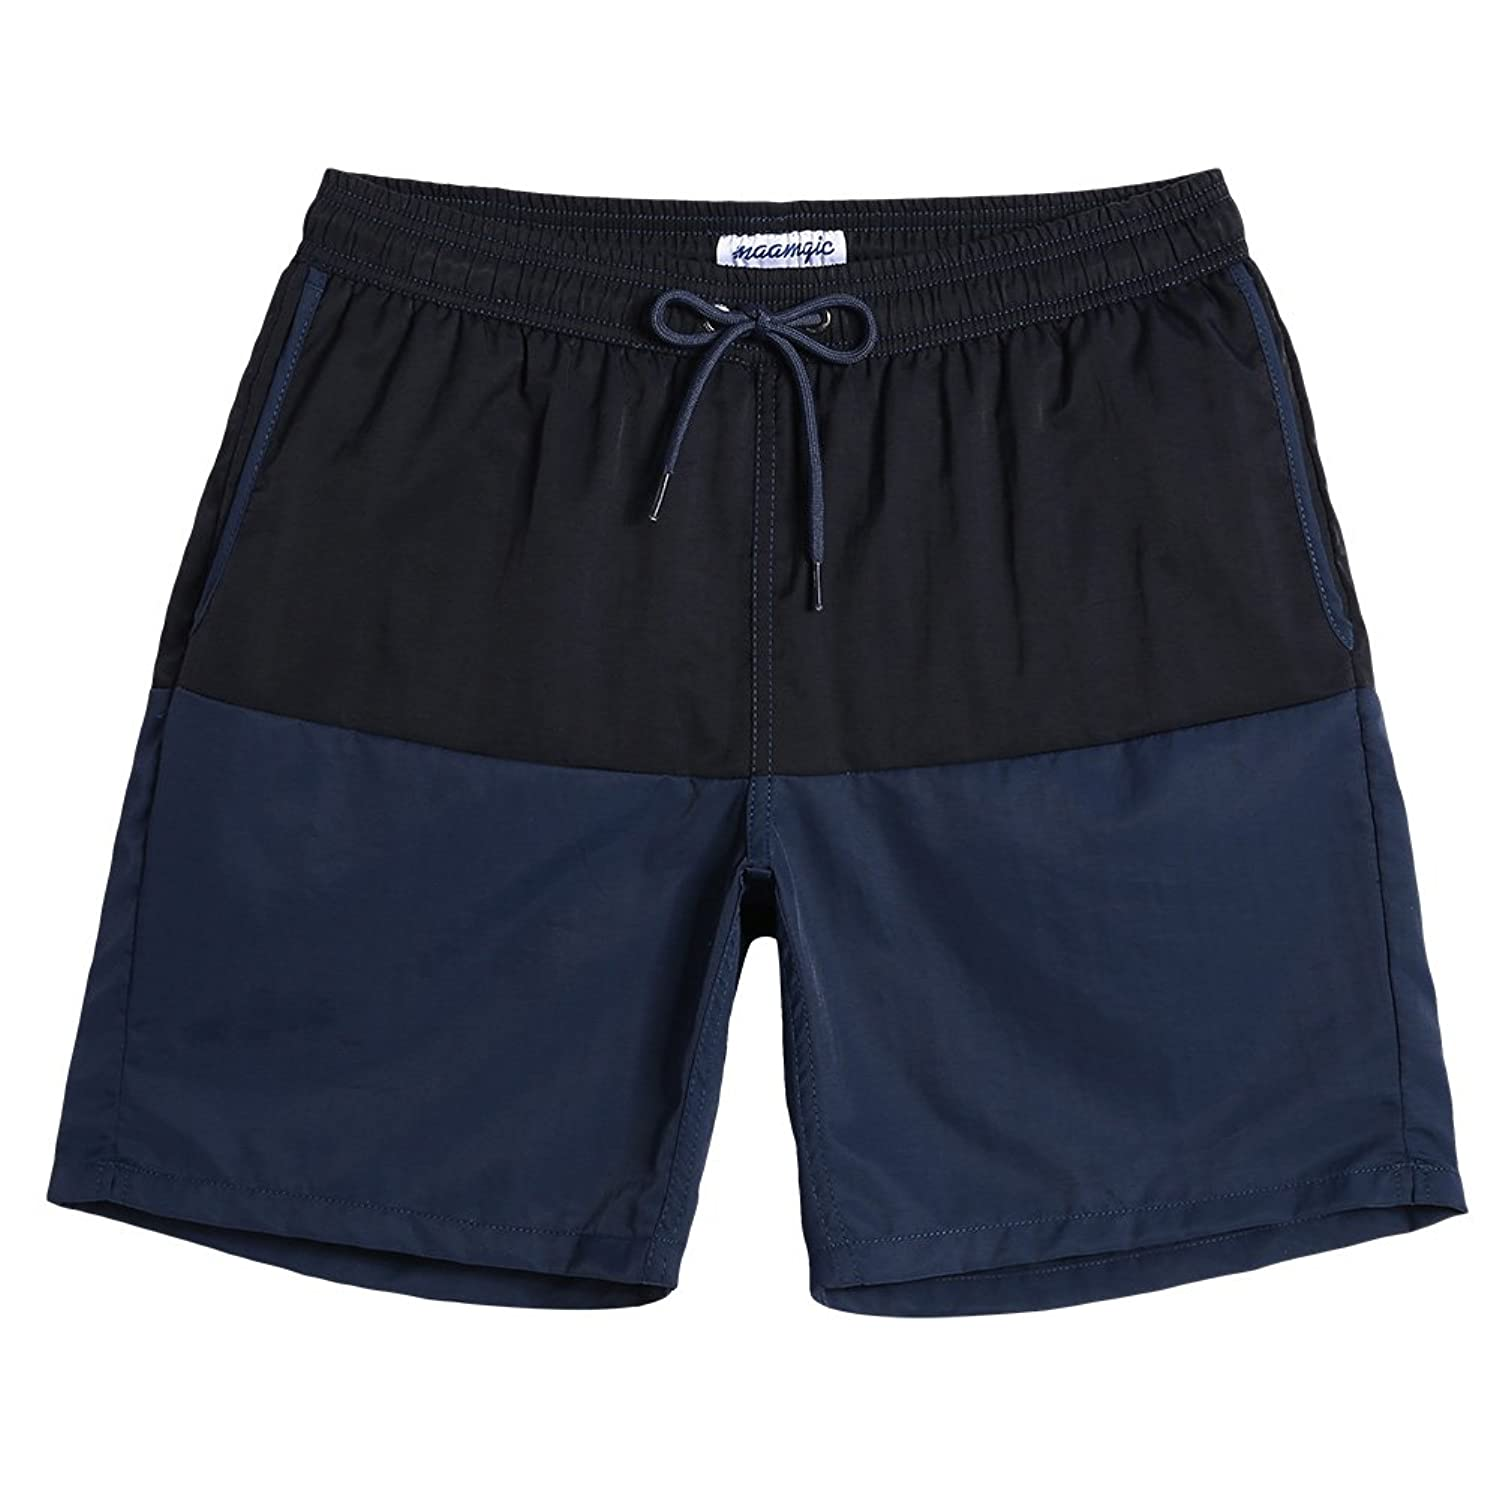 831a0cb750 Swim Trunks Men Short: This Short Get 6 Inch Inseam, It Is Short And Above  Your Knee. Fit Perfect With Your Body. Men's Swim Trunks With Mesh Liner:  This ...